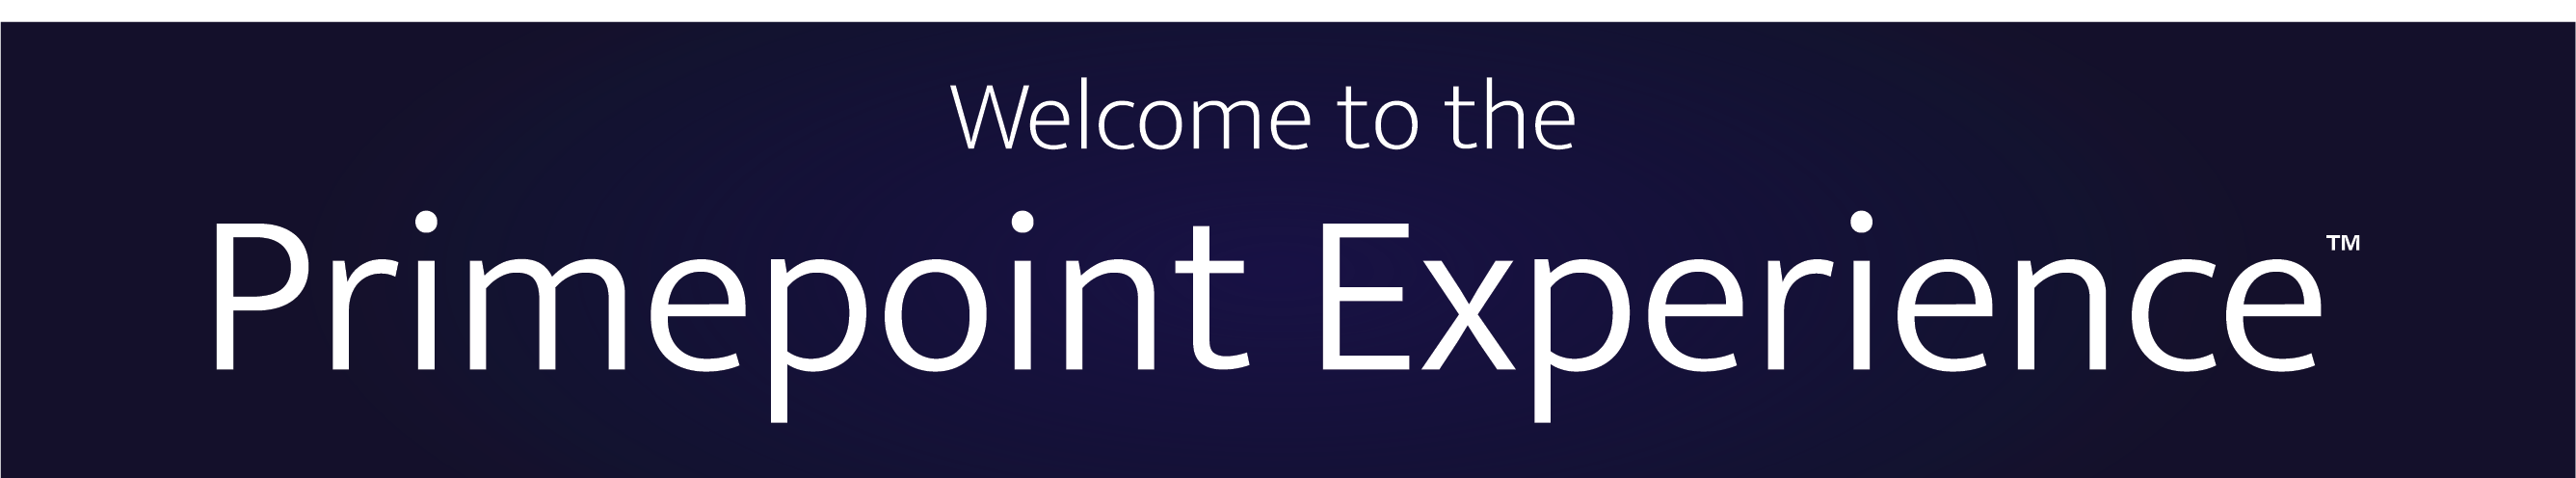 Primepoint.Experience.header.4